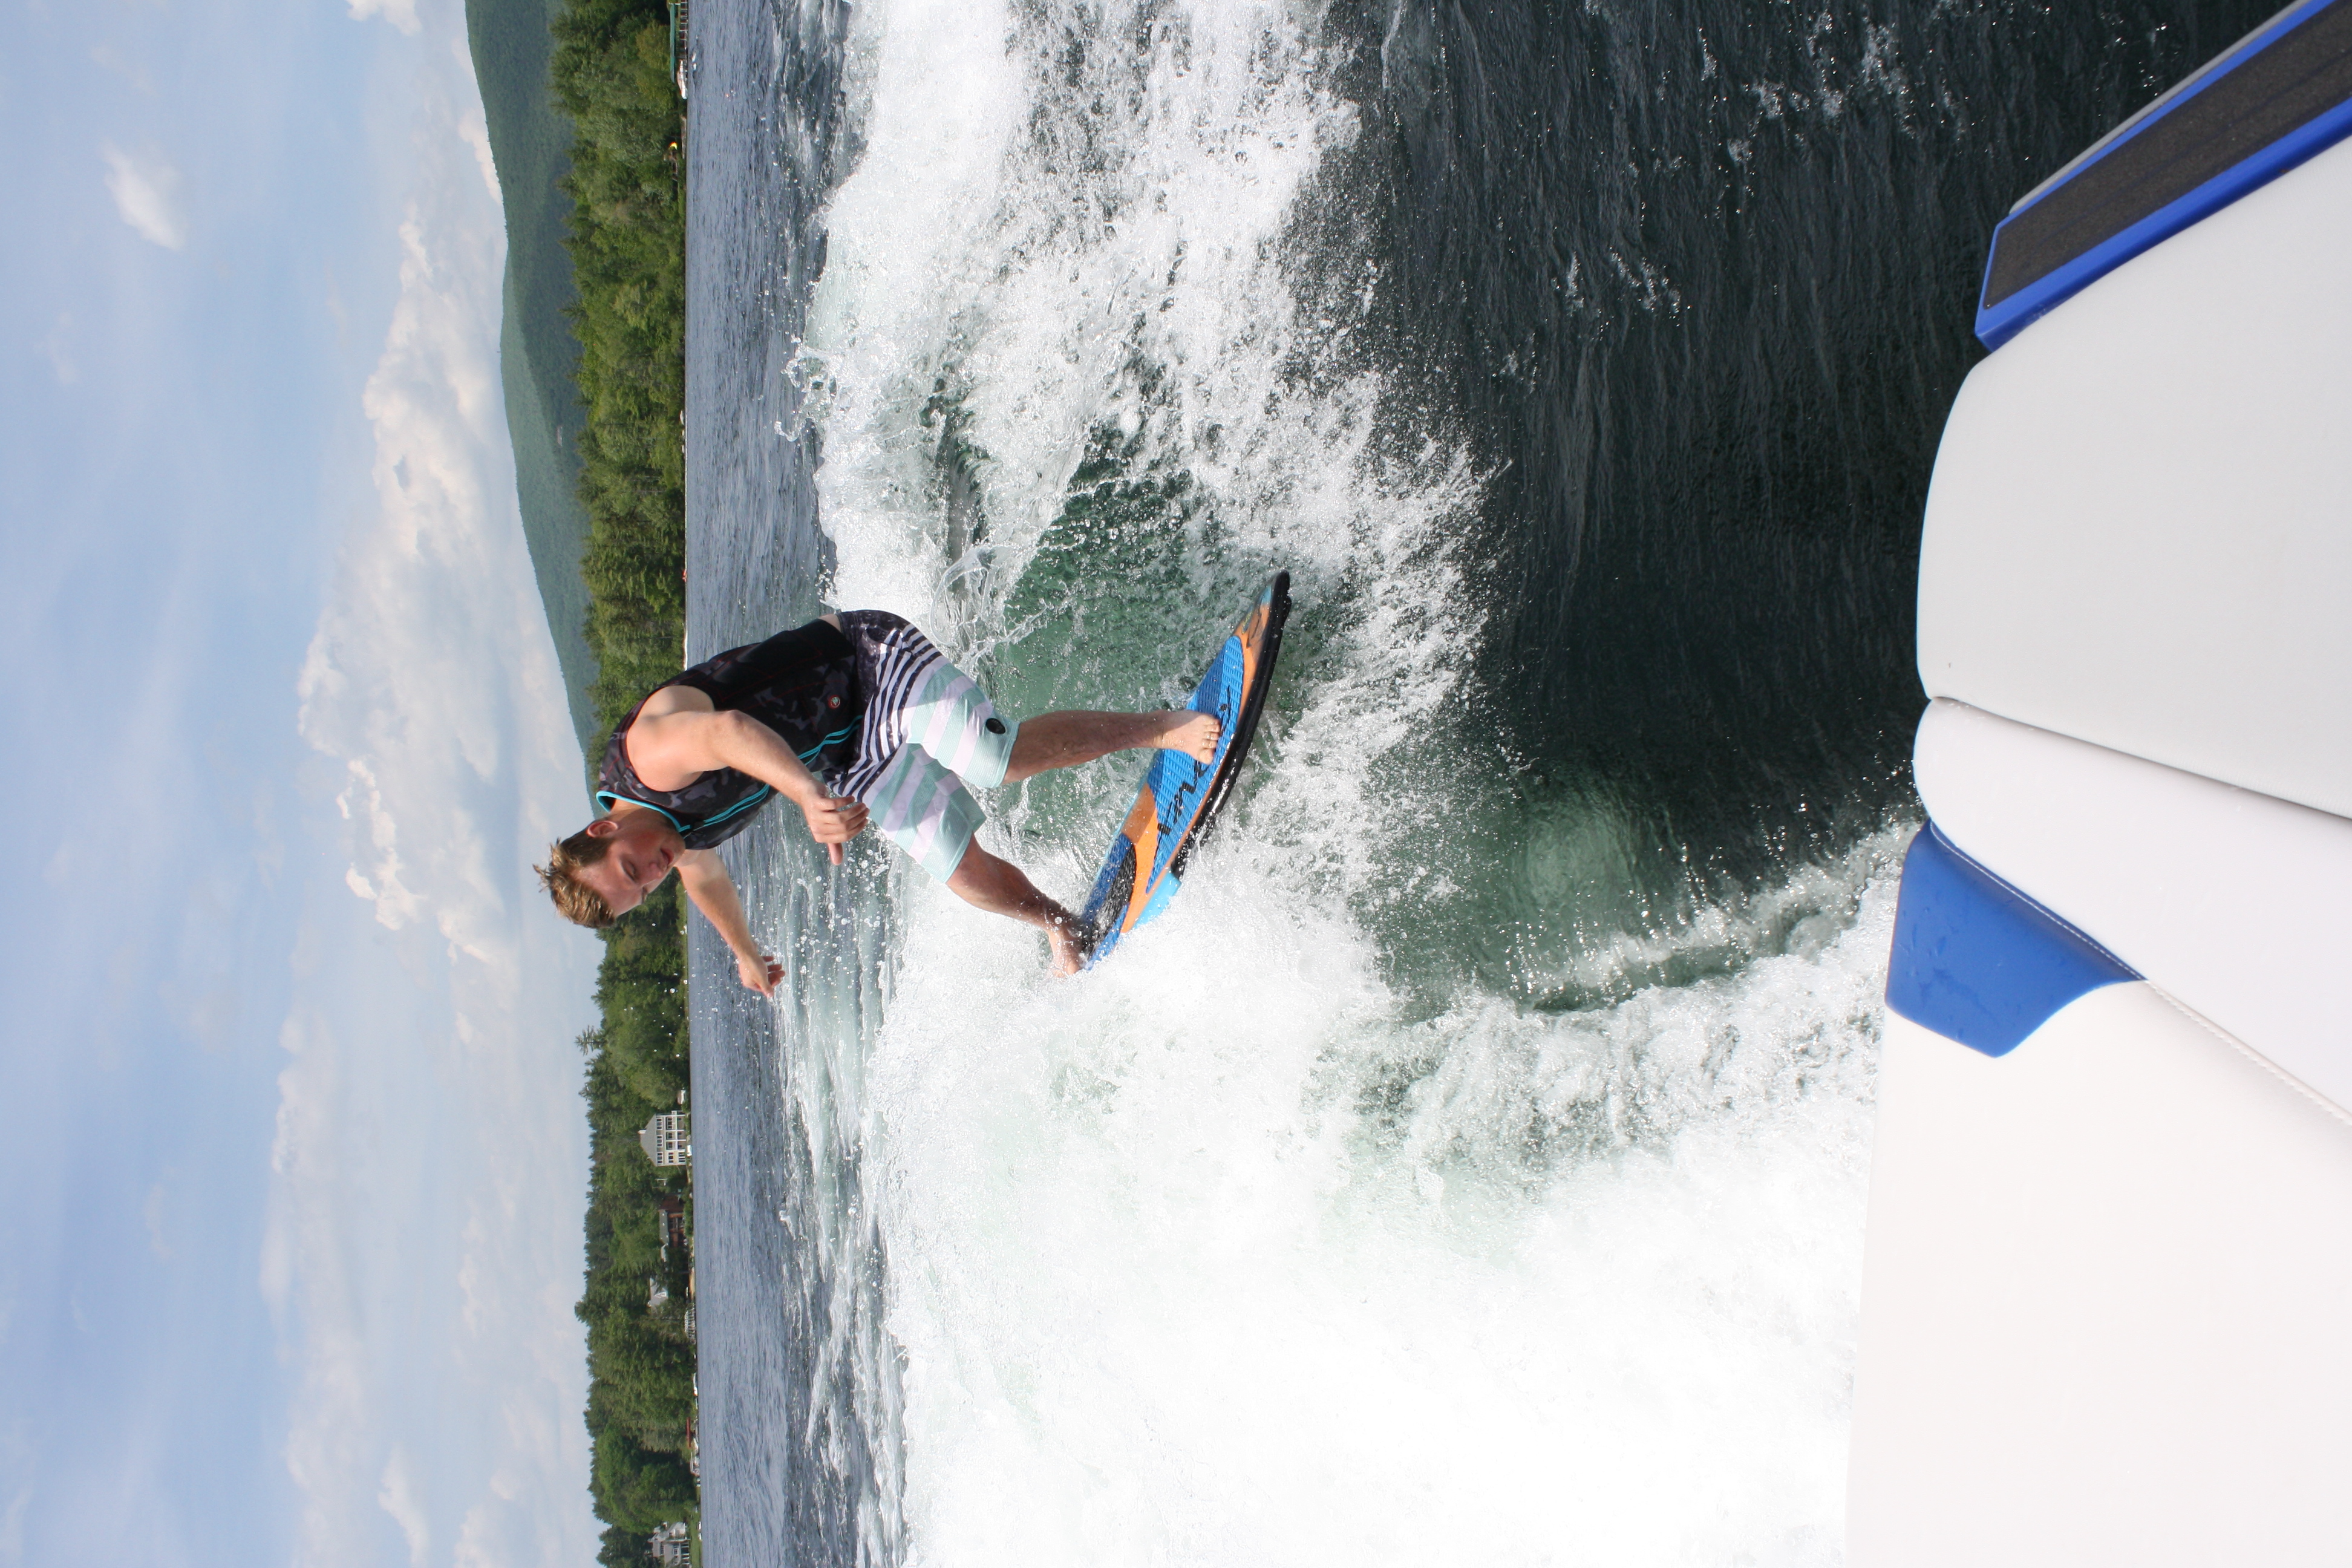 Wakesurfing on Winnipesaukee